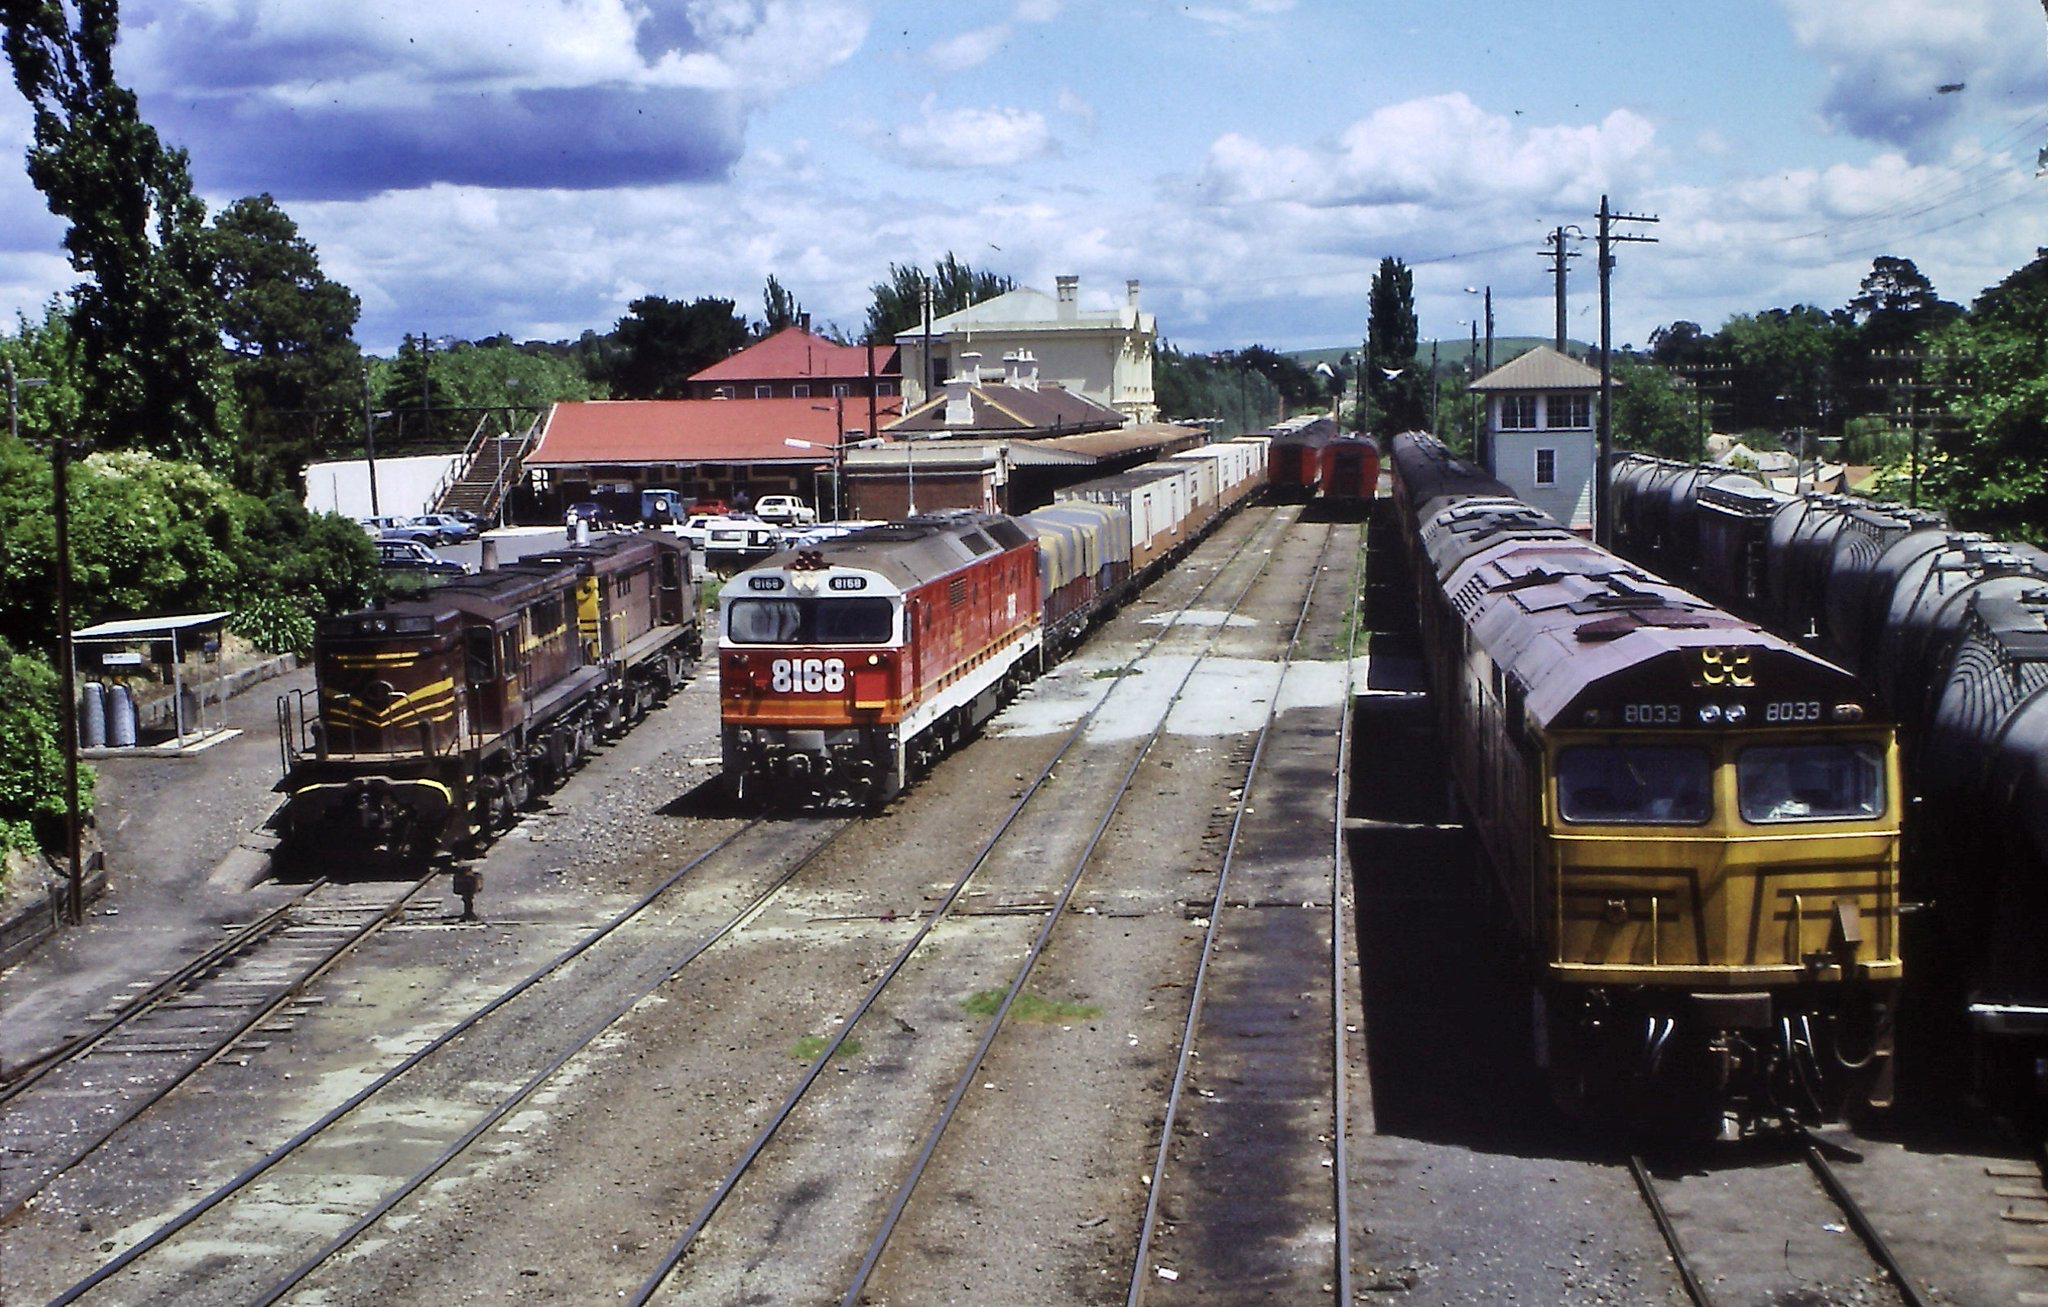 A Sydney-bound freight from southern NSW and Melbourne hauled by 8168 at a crowded Moss Vale, NSW,1985.